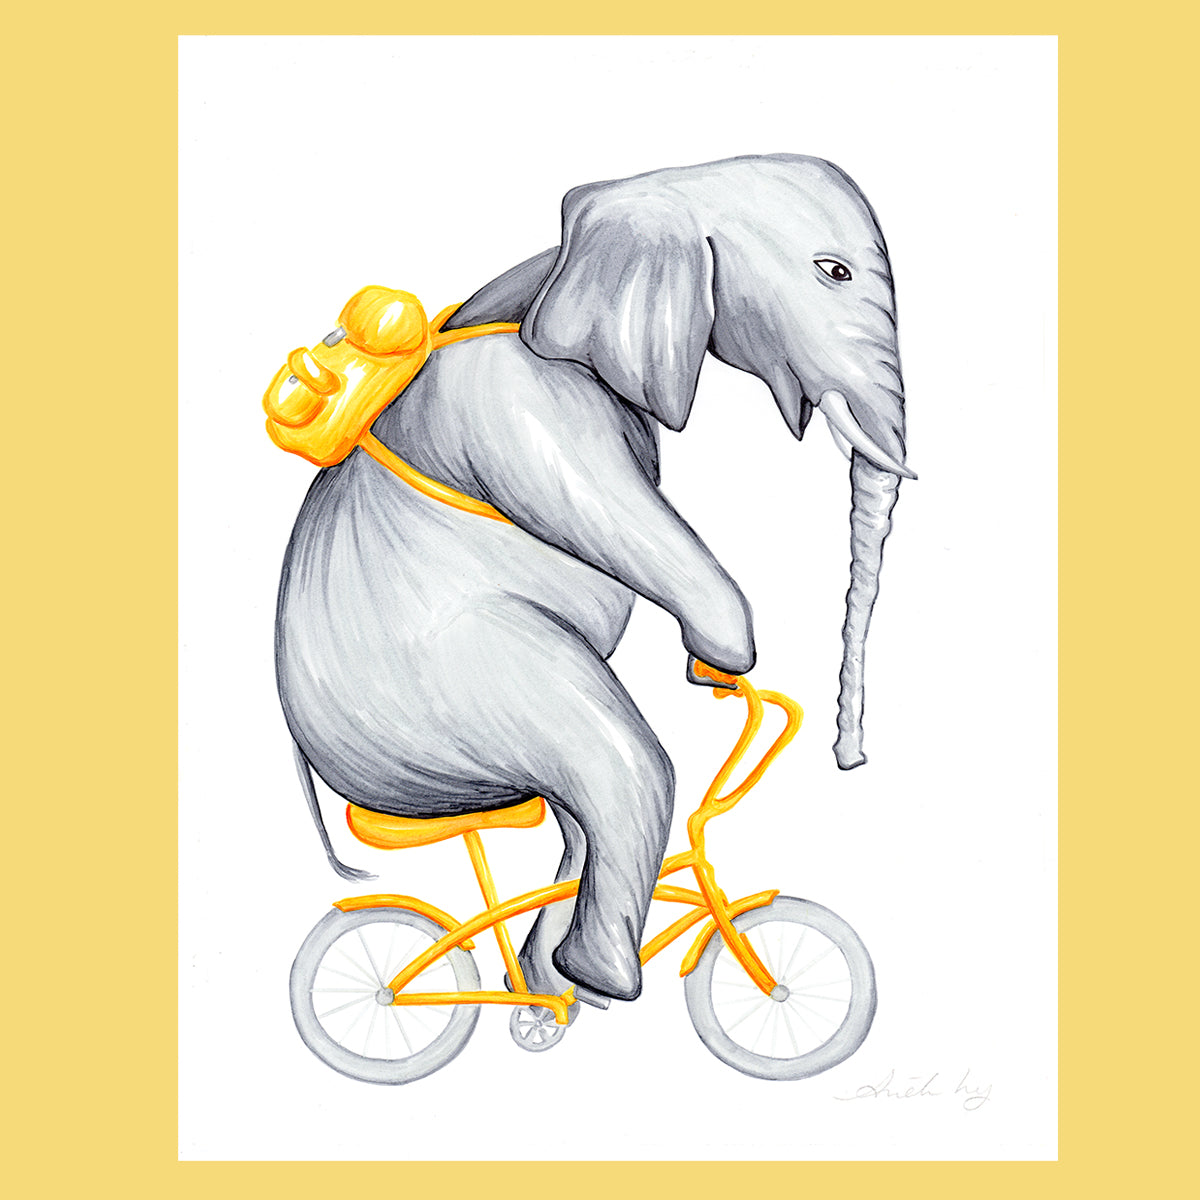 Elephant on a bike - Original Artwork, elephant illustration, Amelie Legault